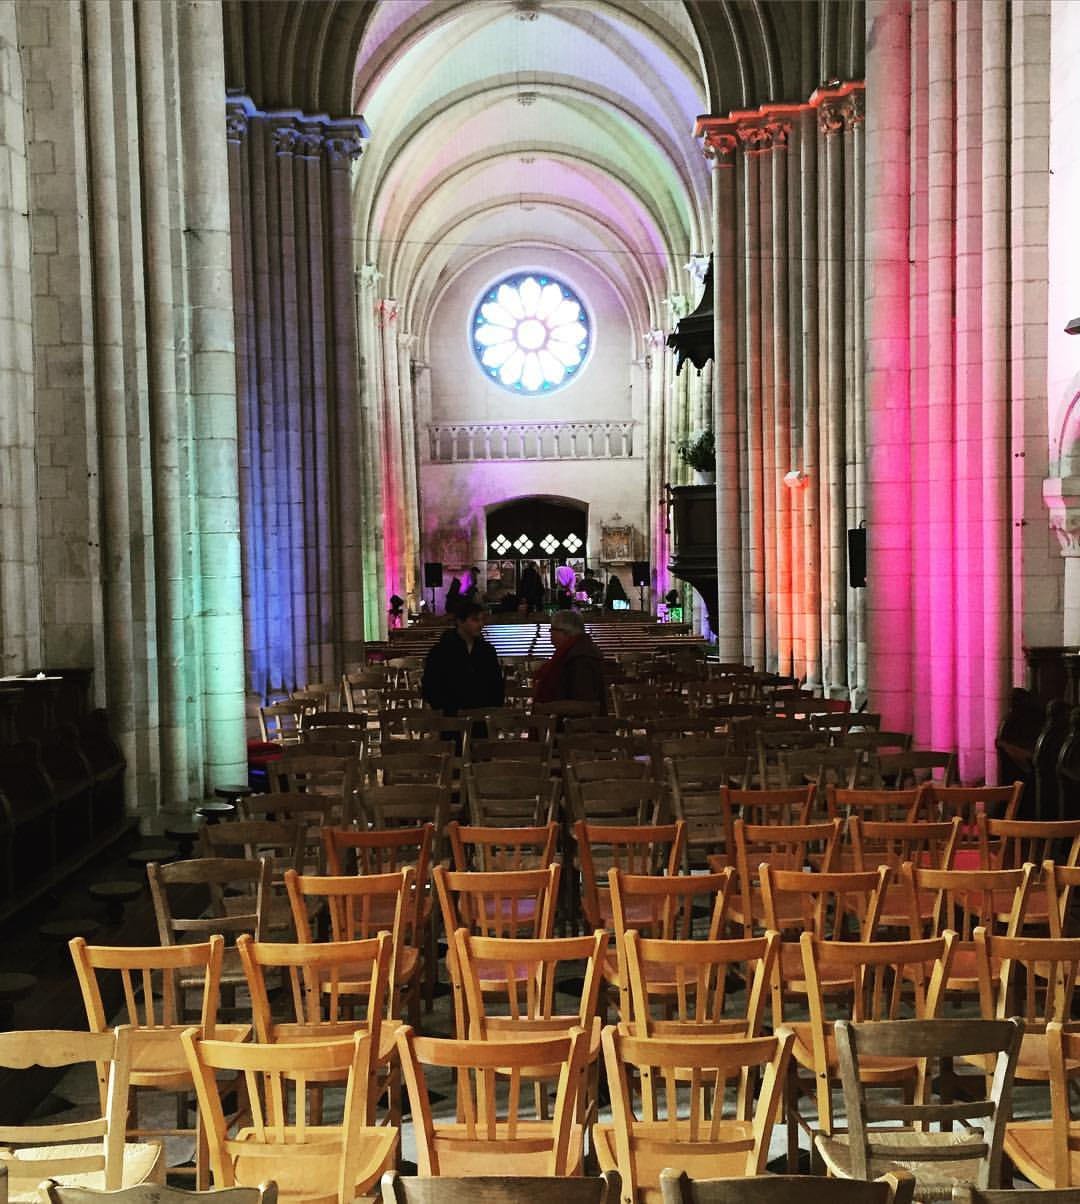 Our home for the evening. Church of colors 💗🙏🏾 #bourgdun #normandie #luigigrasso #fabienmarcoz #hugolippy #stephanechandelier